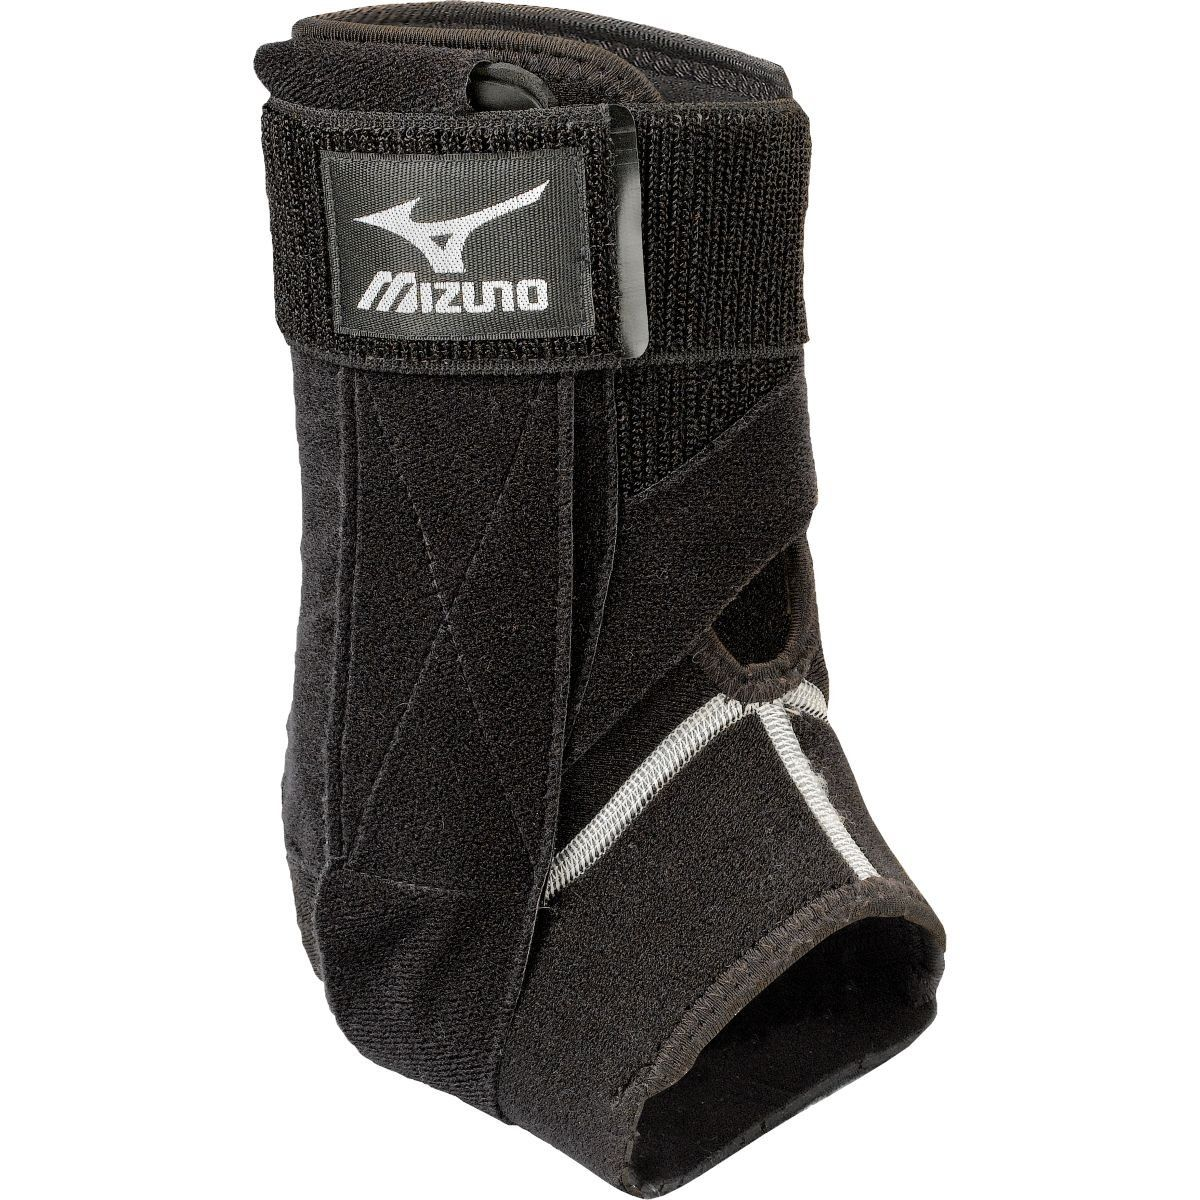 Mizuno Dxs Ankle Brace Volleyball Ankle Braces Ankle Braces Sports Braces